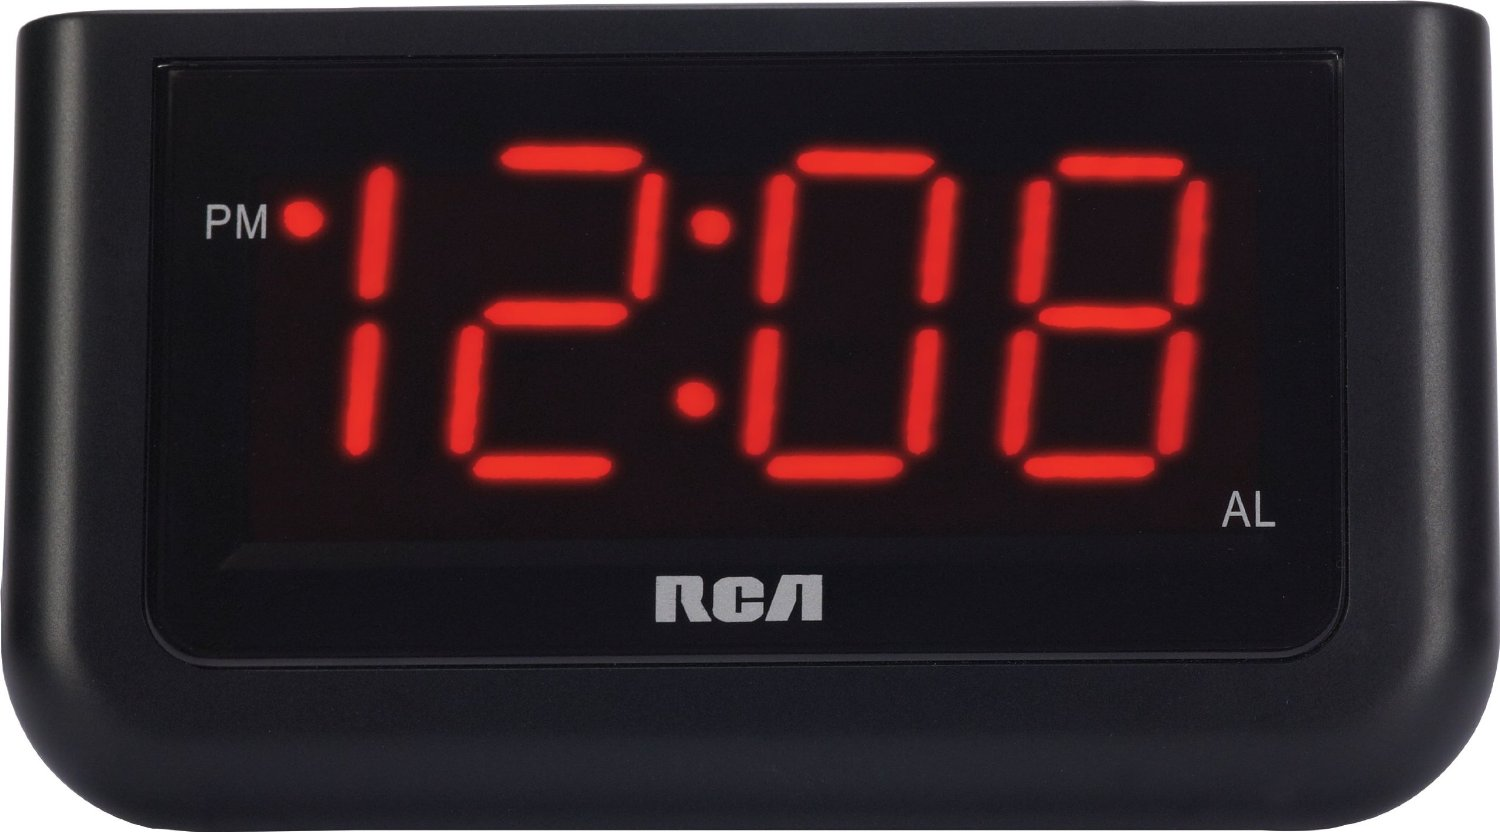 Rca Rcd30 High Quality Alarm Clock With 1 4 Inch Red Led